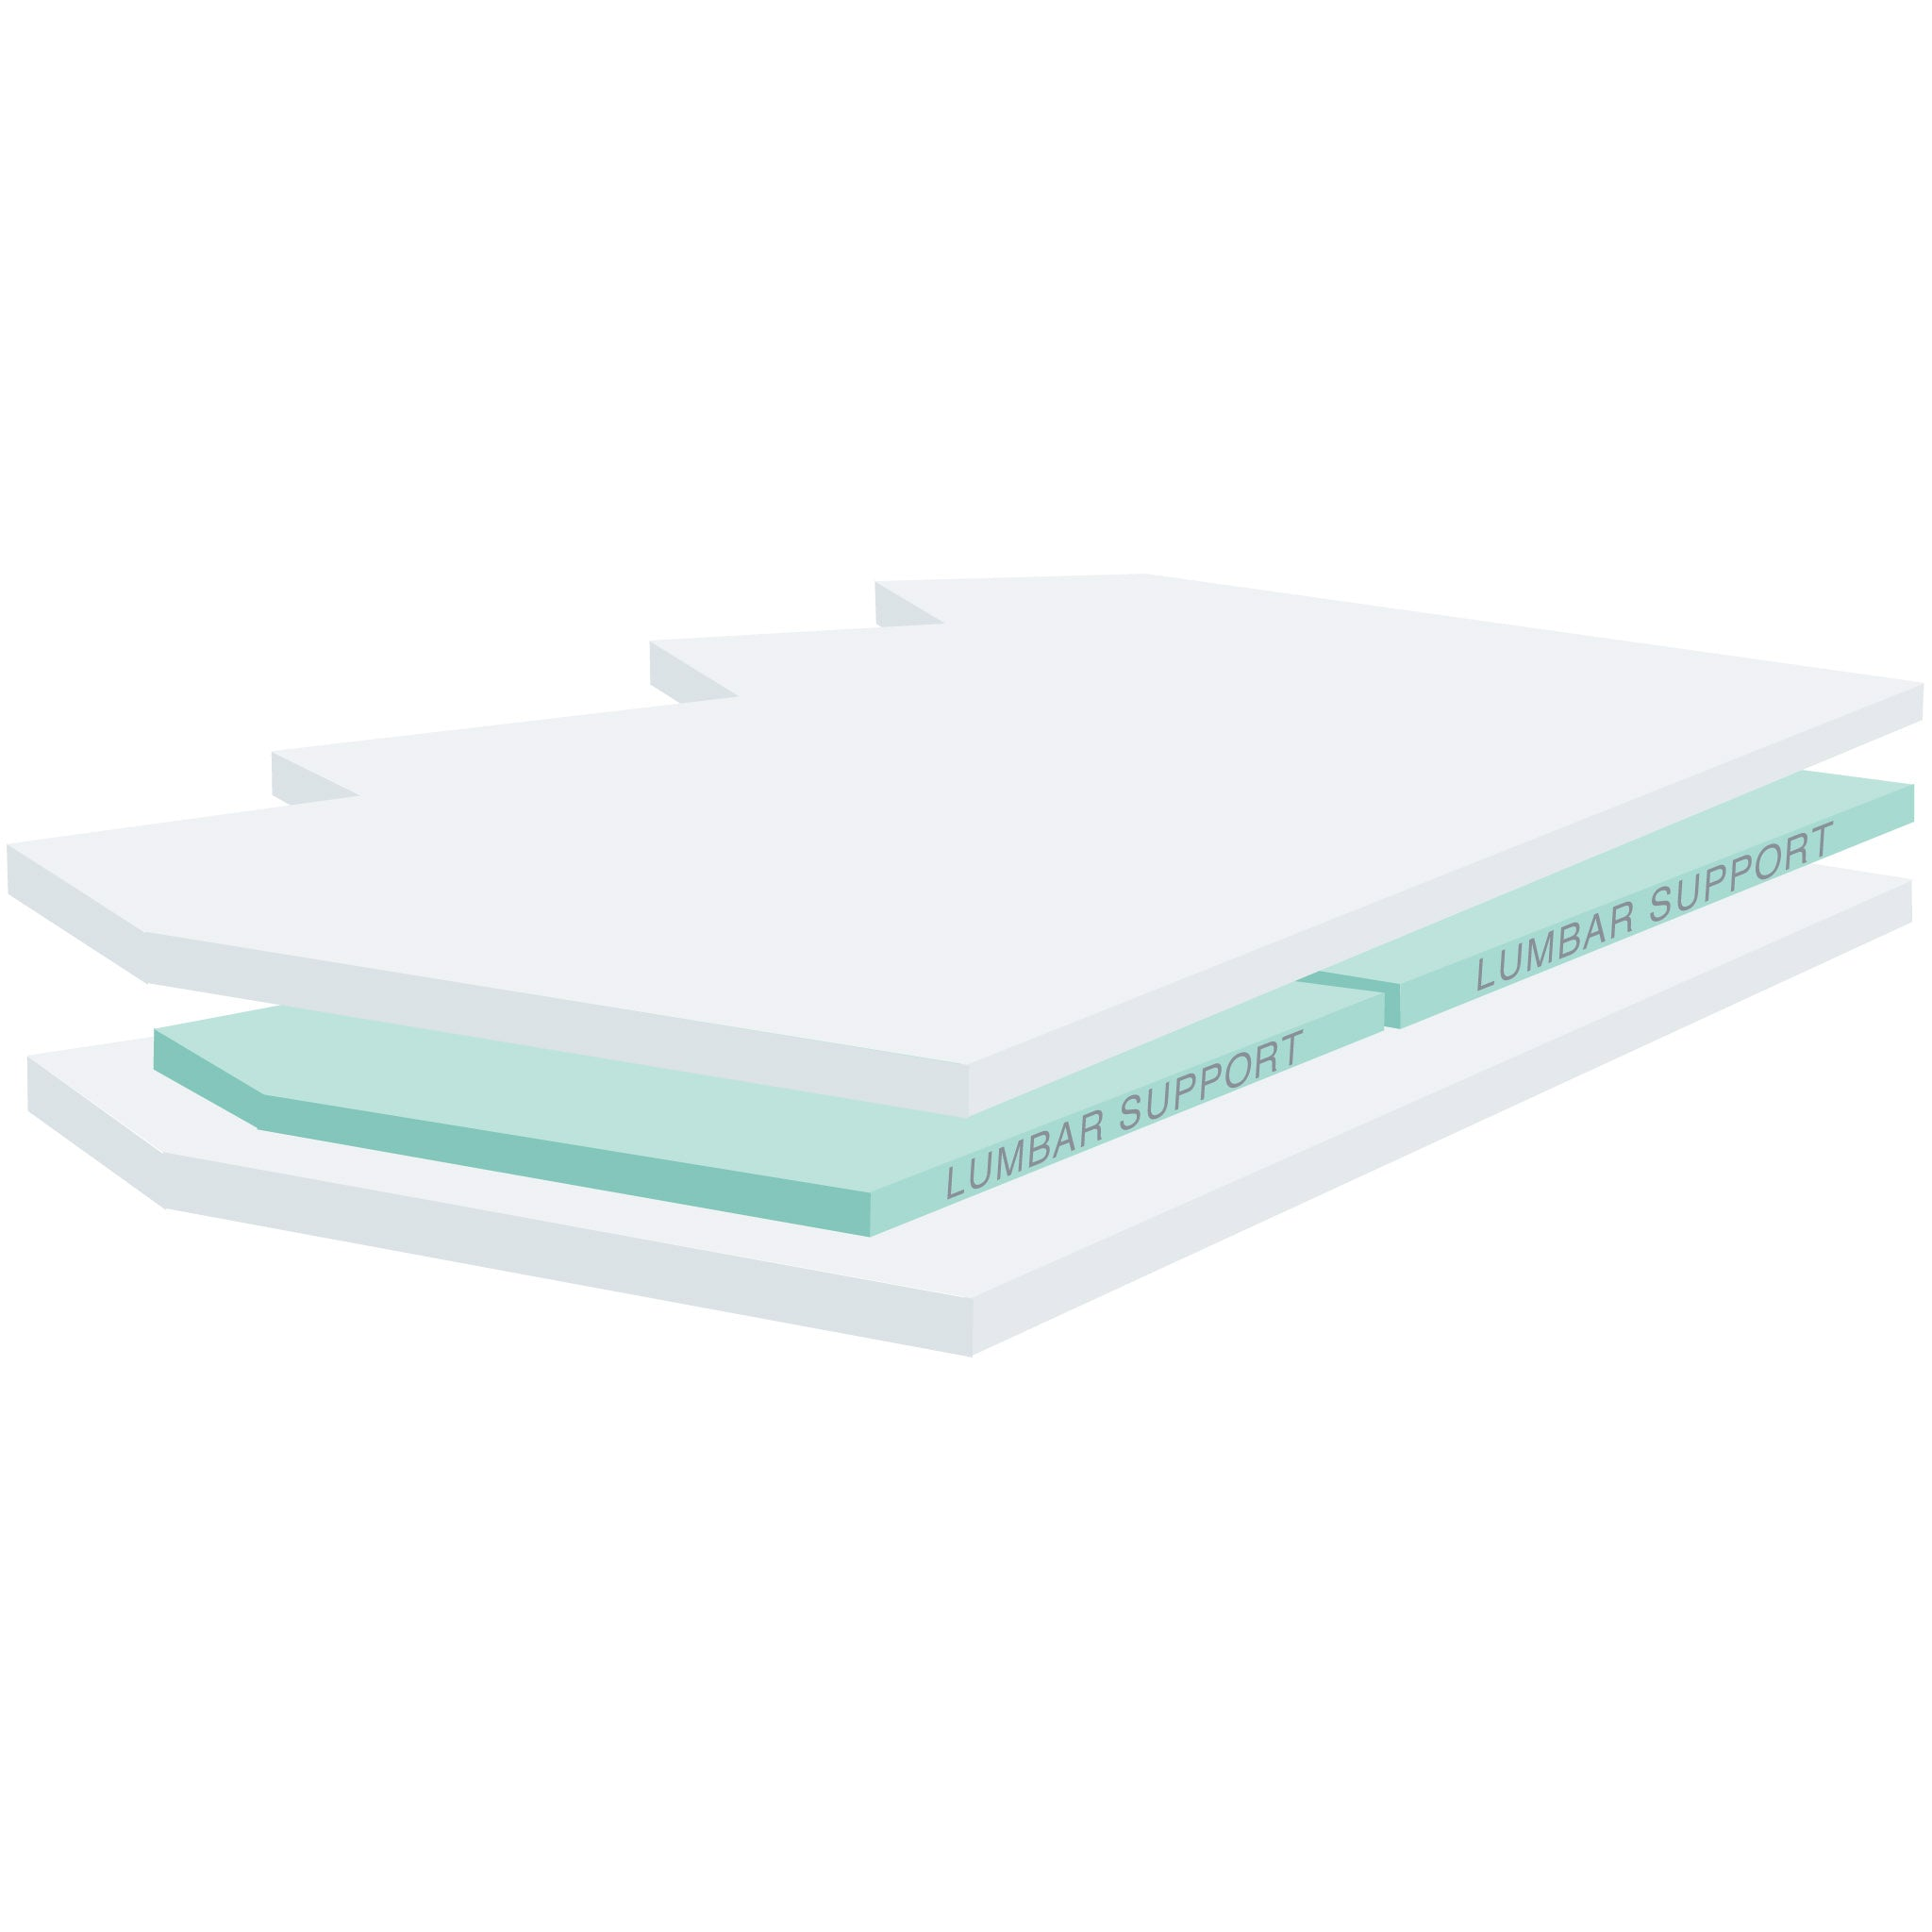 "6621 Waveless Softside Mattress, Mid Fill (6.25"" fill depth) - Sterling Sleep Systems"